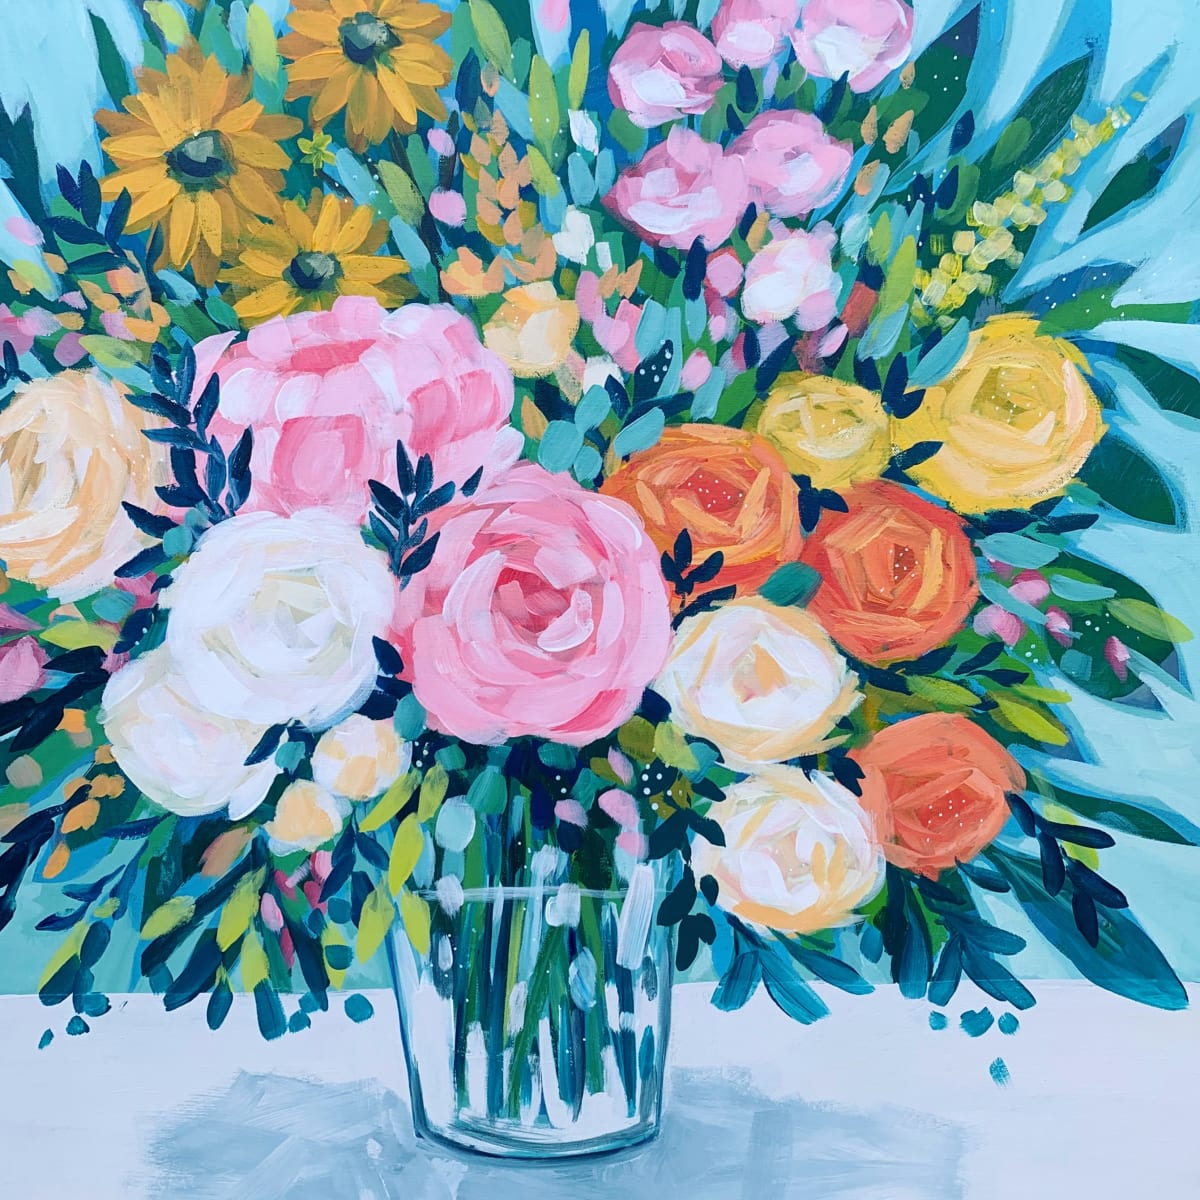 Mostly Roses by Clair Bremner